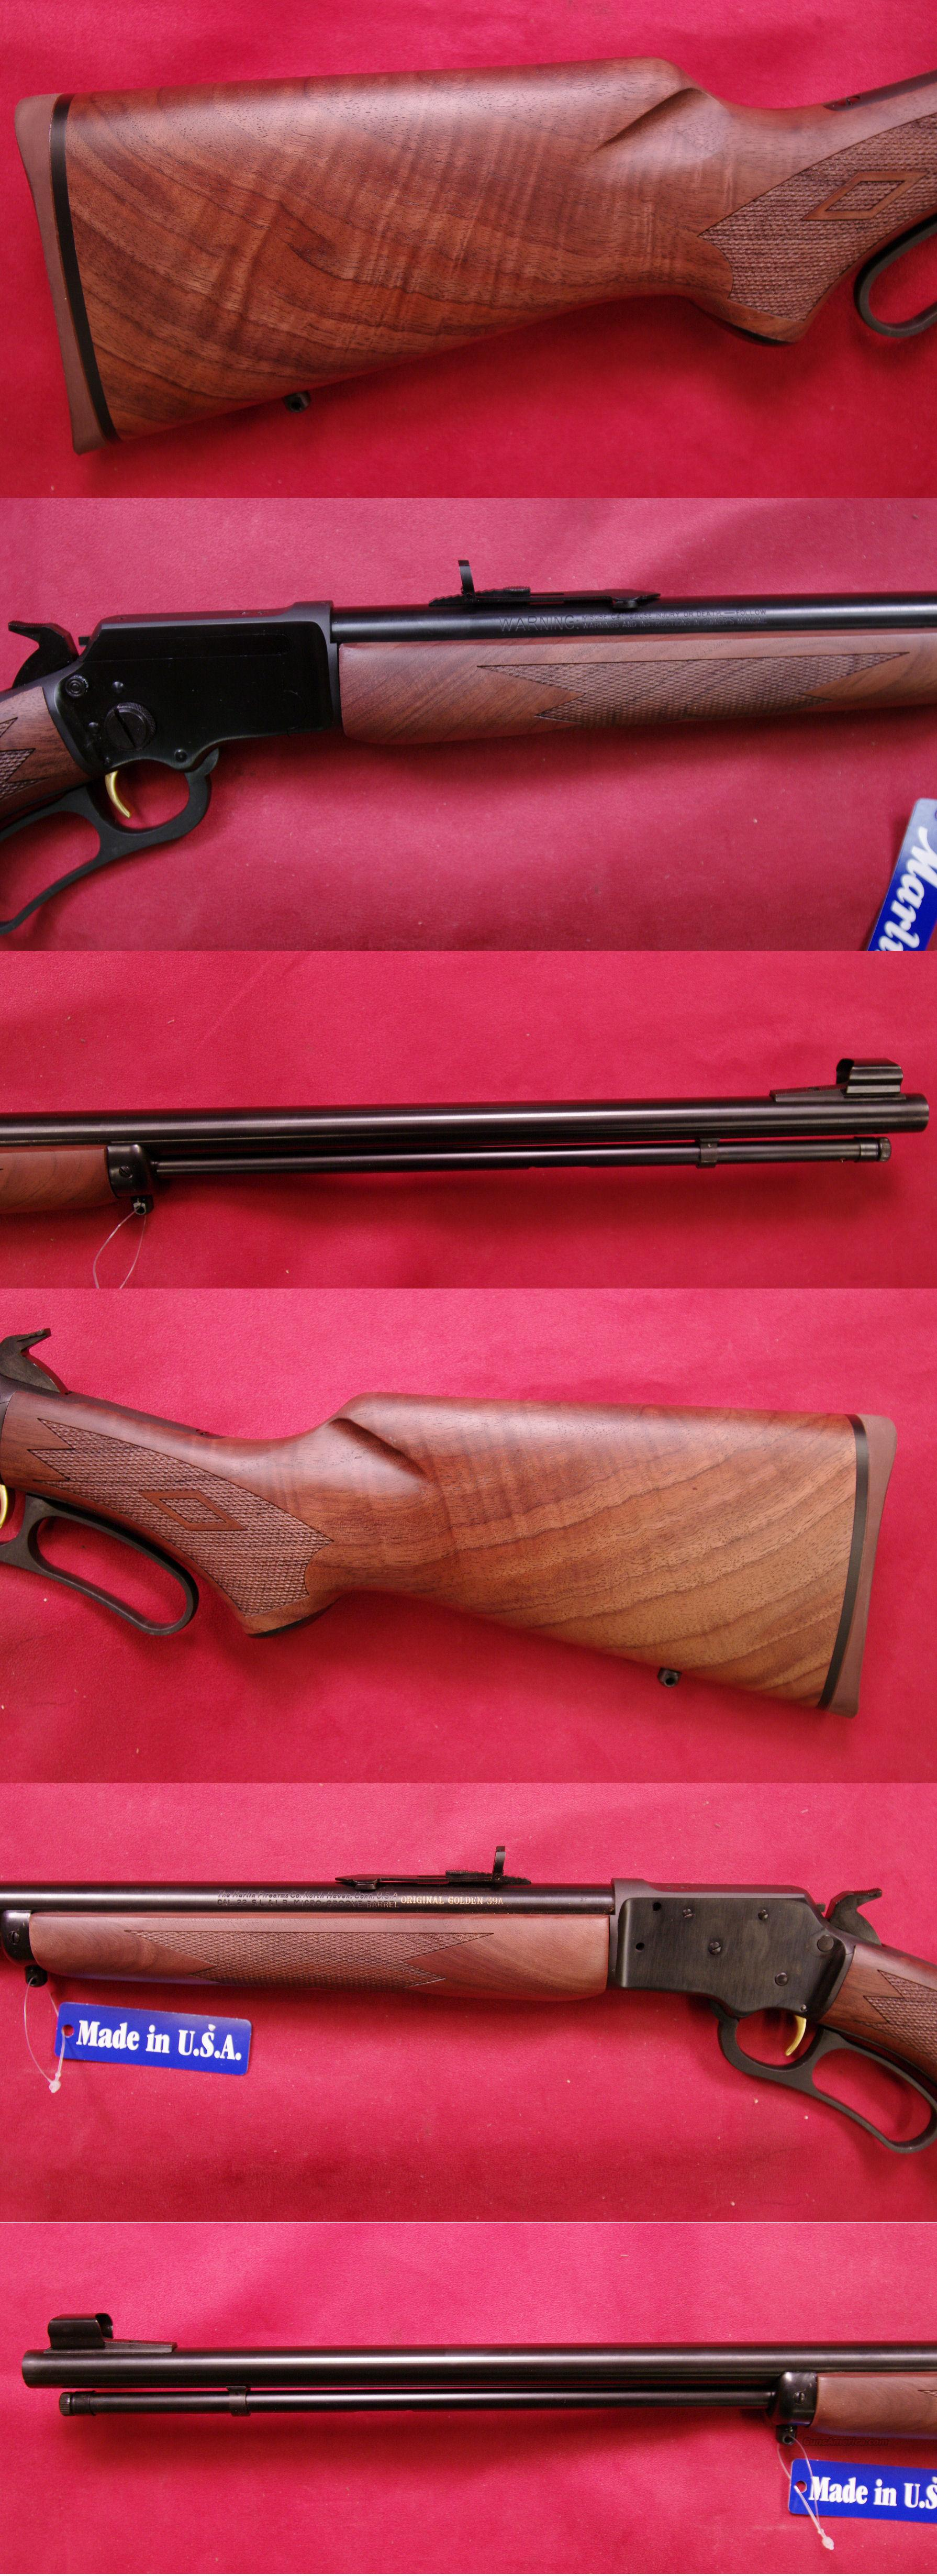 Marlin 39A Lever Action .22 Cal  Guns > Rifles > Marlin Rifles > Modern > Lever Action